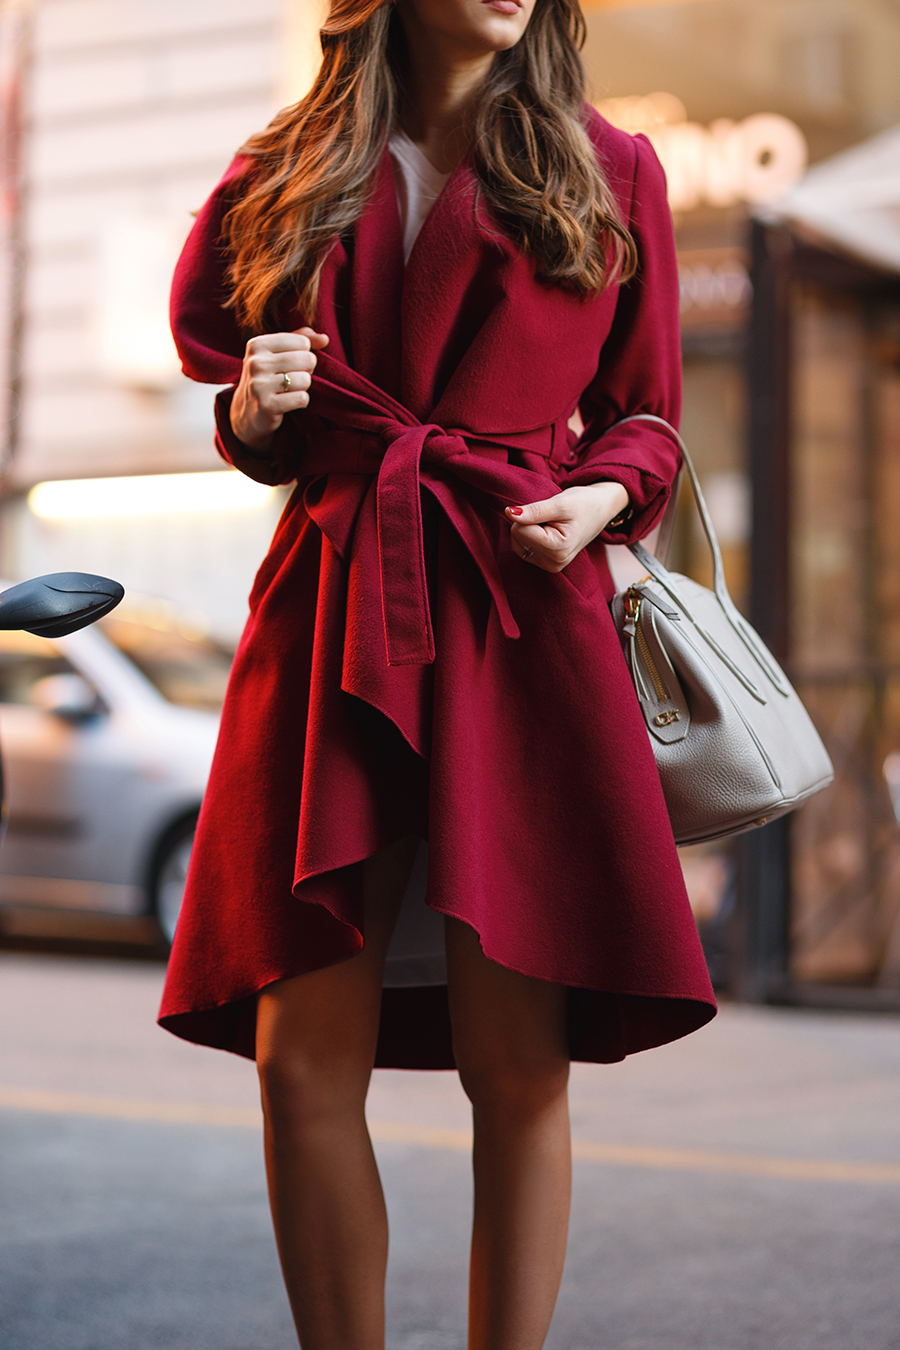 Autumn Has ArrivedSo Has The Robe Coat Trend - Just The Design